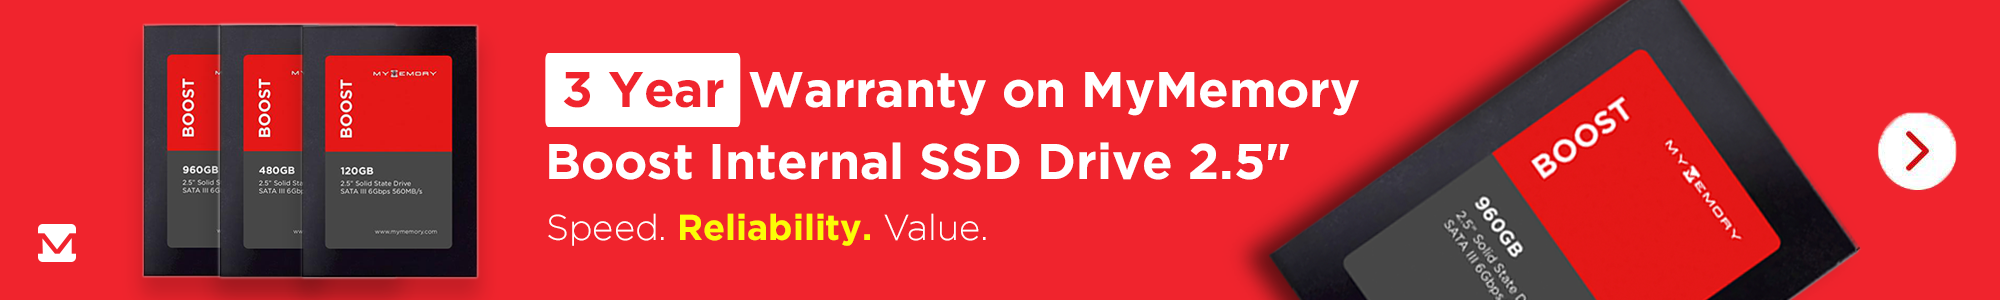 3 Year Warranty on MyMemory Boost SSD!